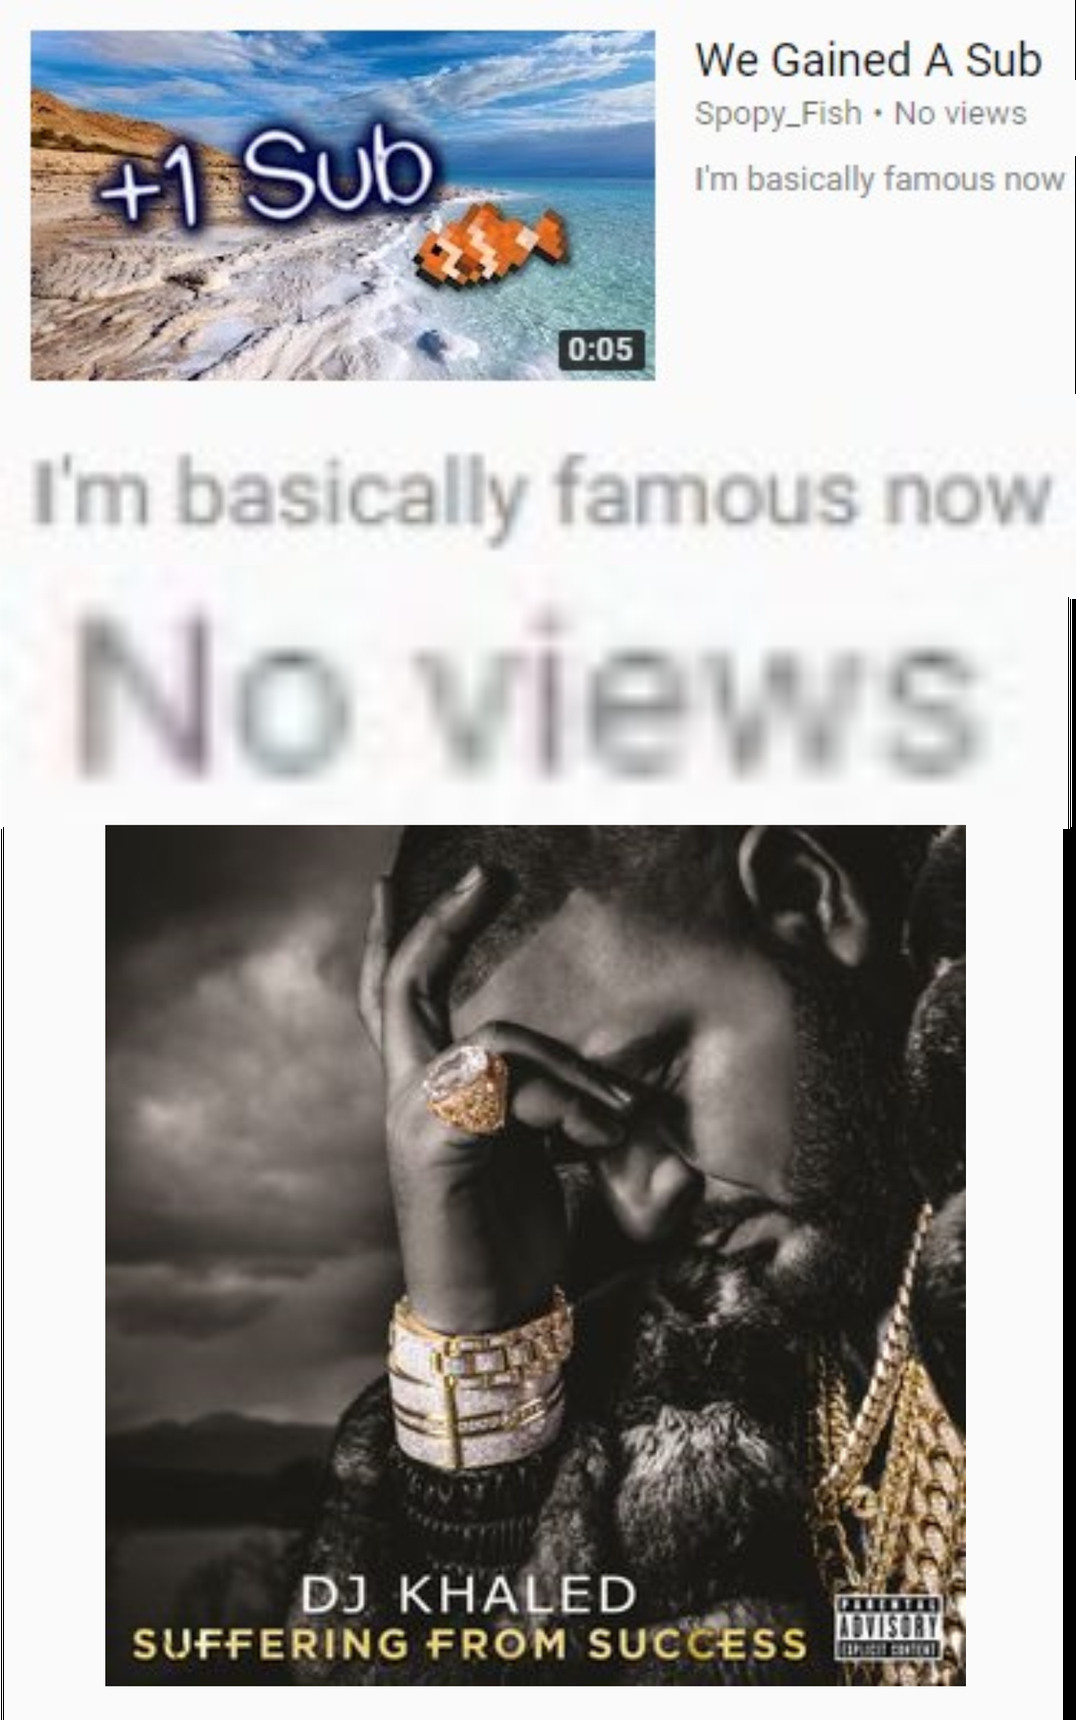 I wish I was as famous as him - meme